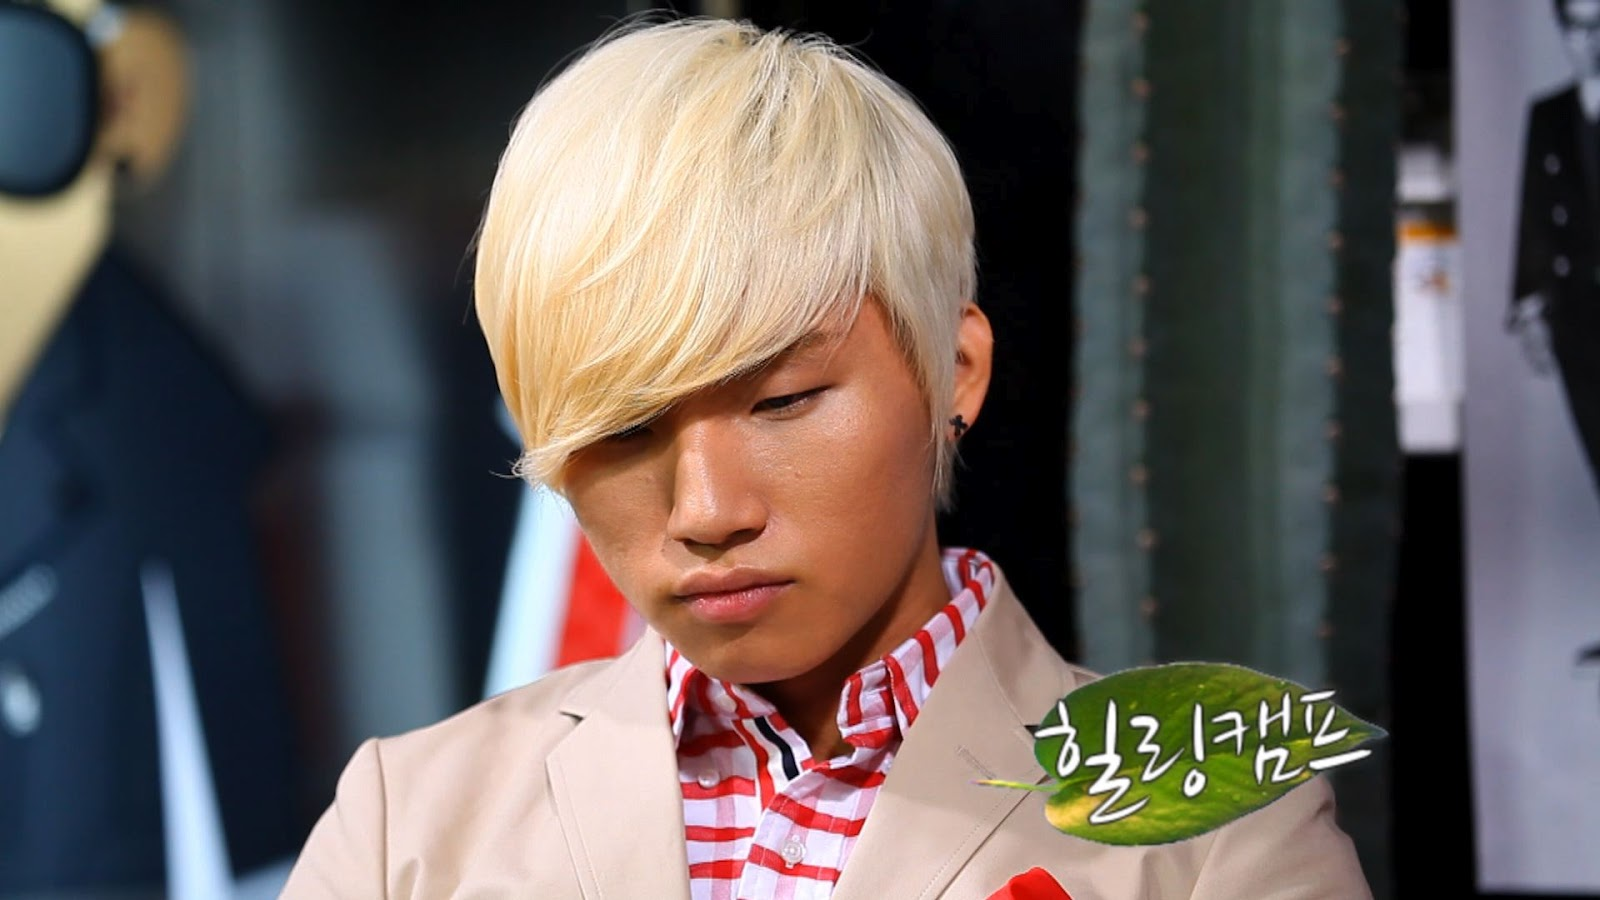 http://ygfamilylover.files.wordpress.com/2012/02/big-bang-daesung-gdragon-healing-camp.jpg